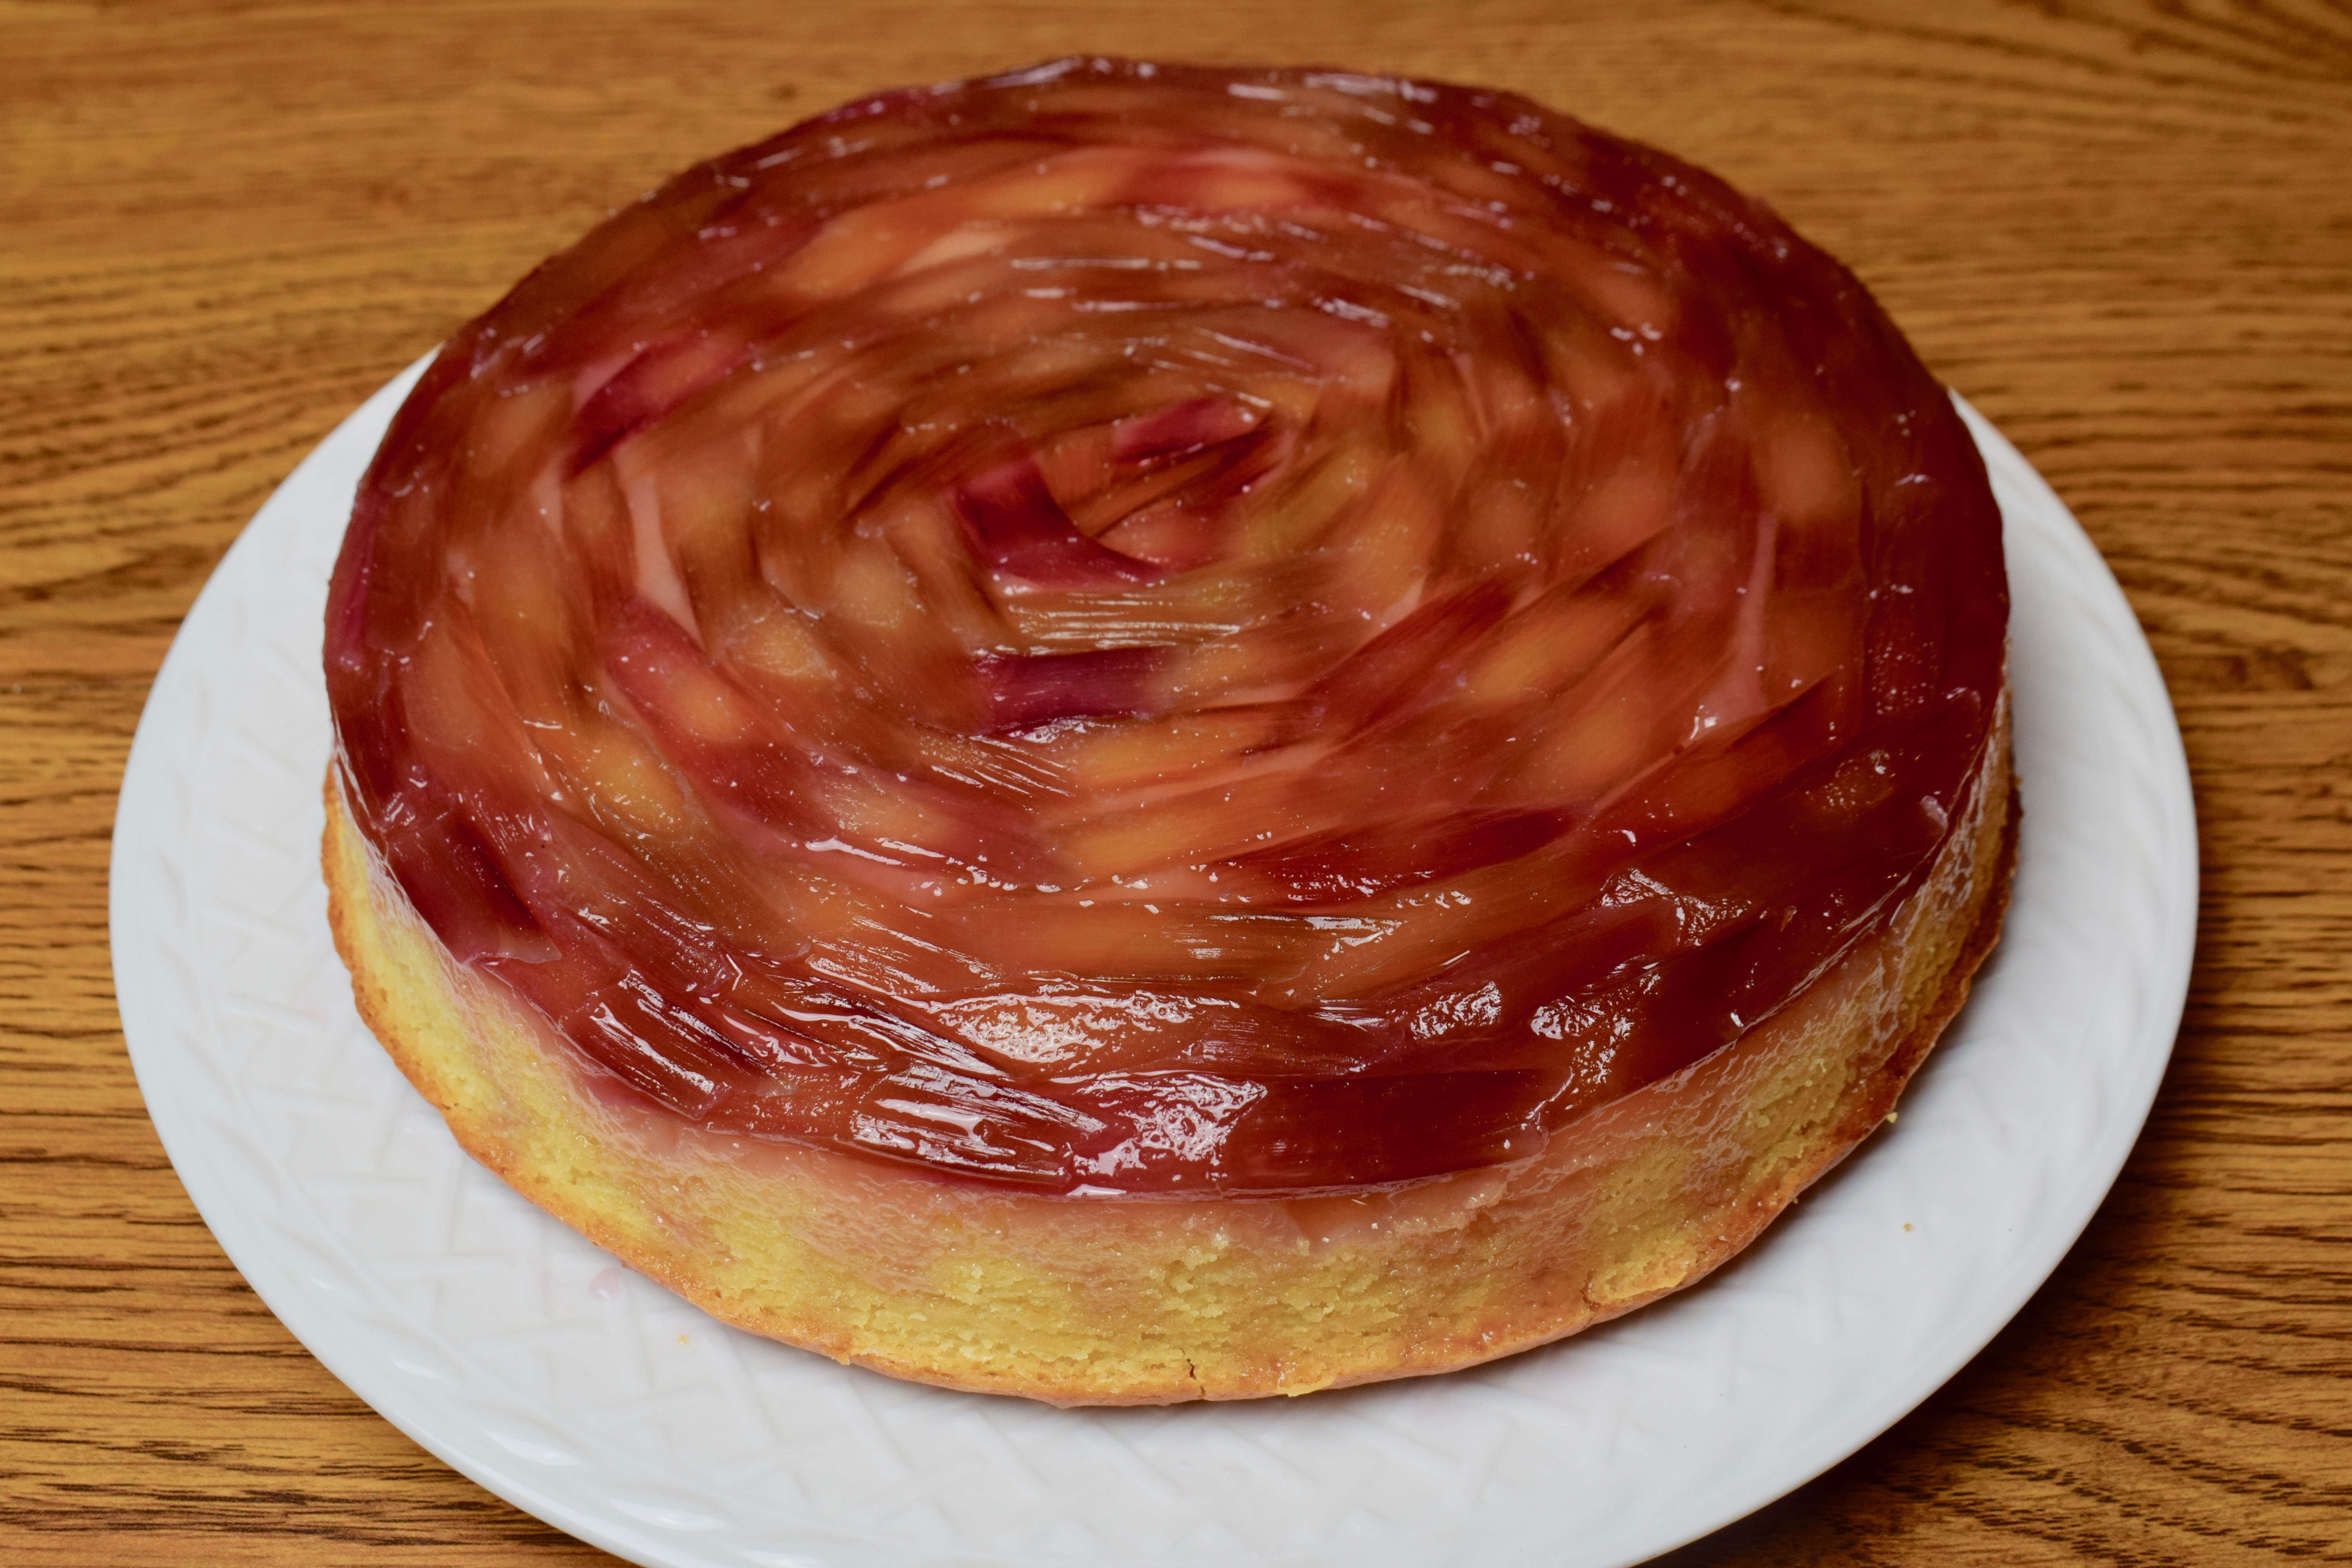 Rhubarb Upside Down Cake Dessert Recipe That Is Perfect For Spring